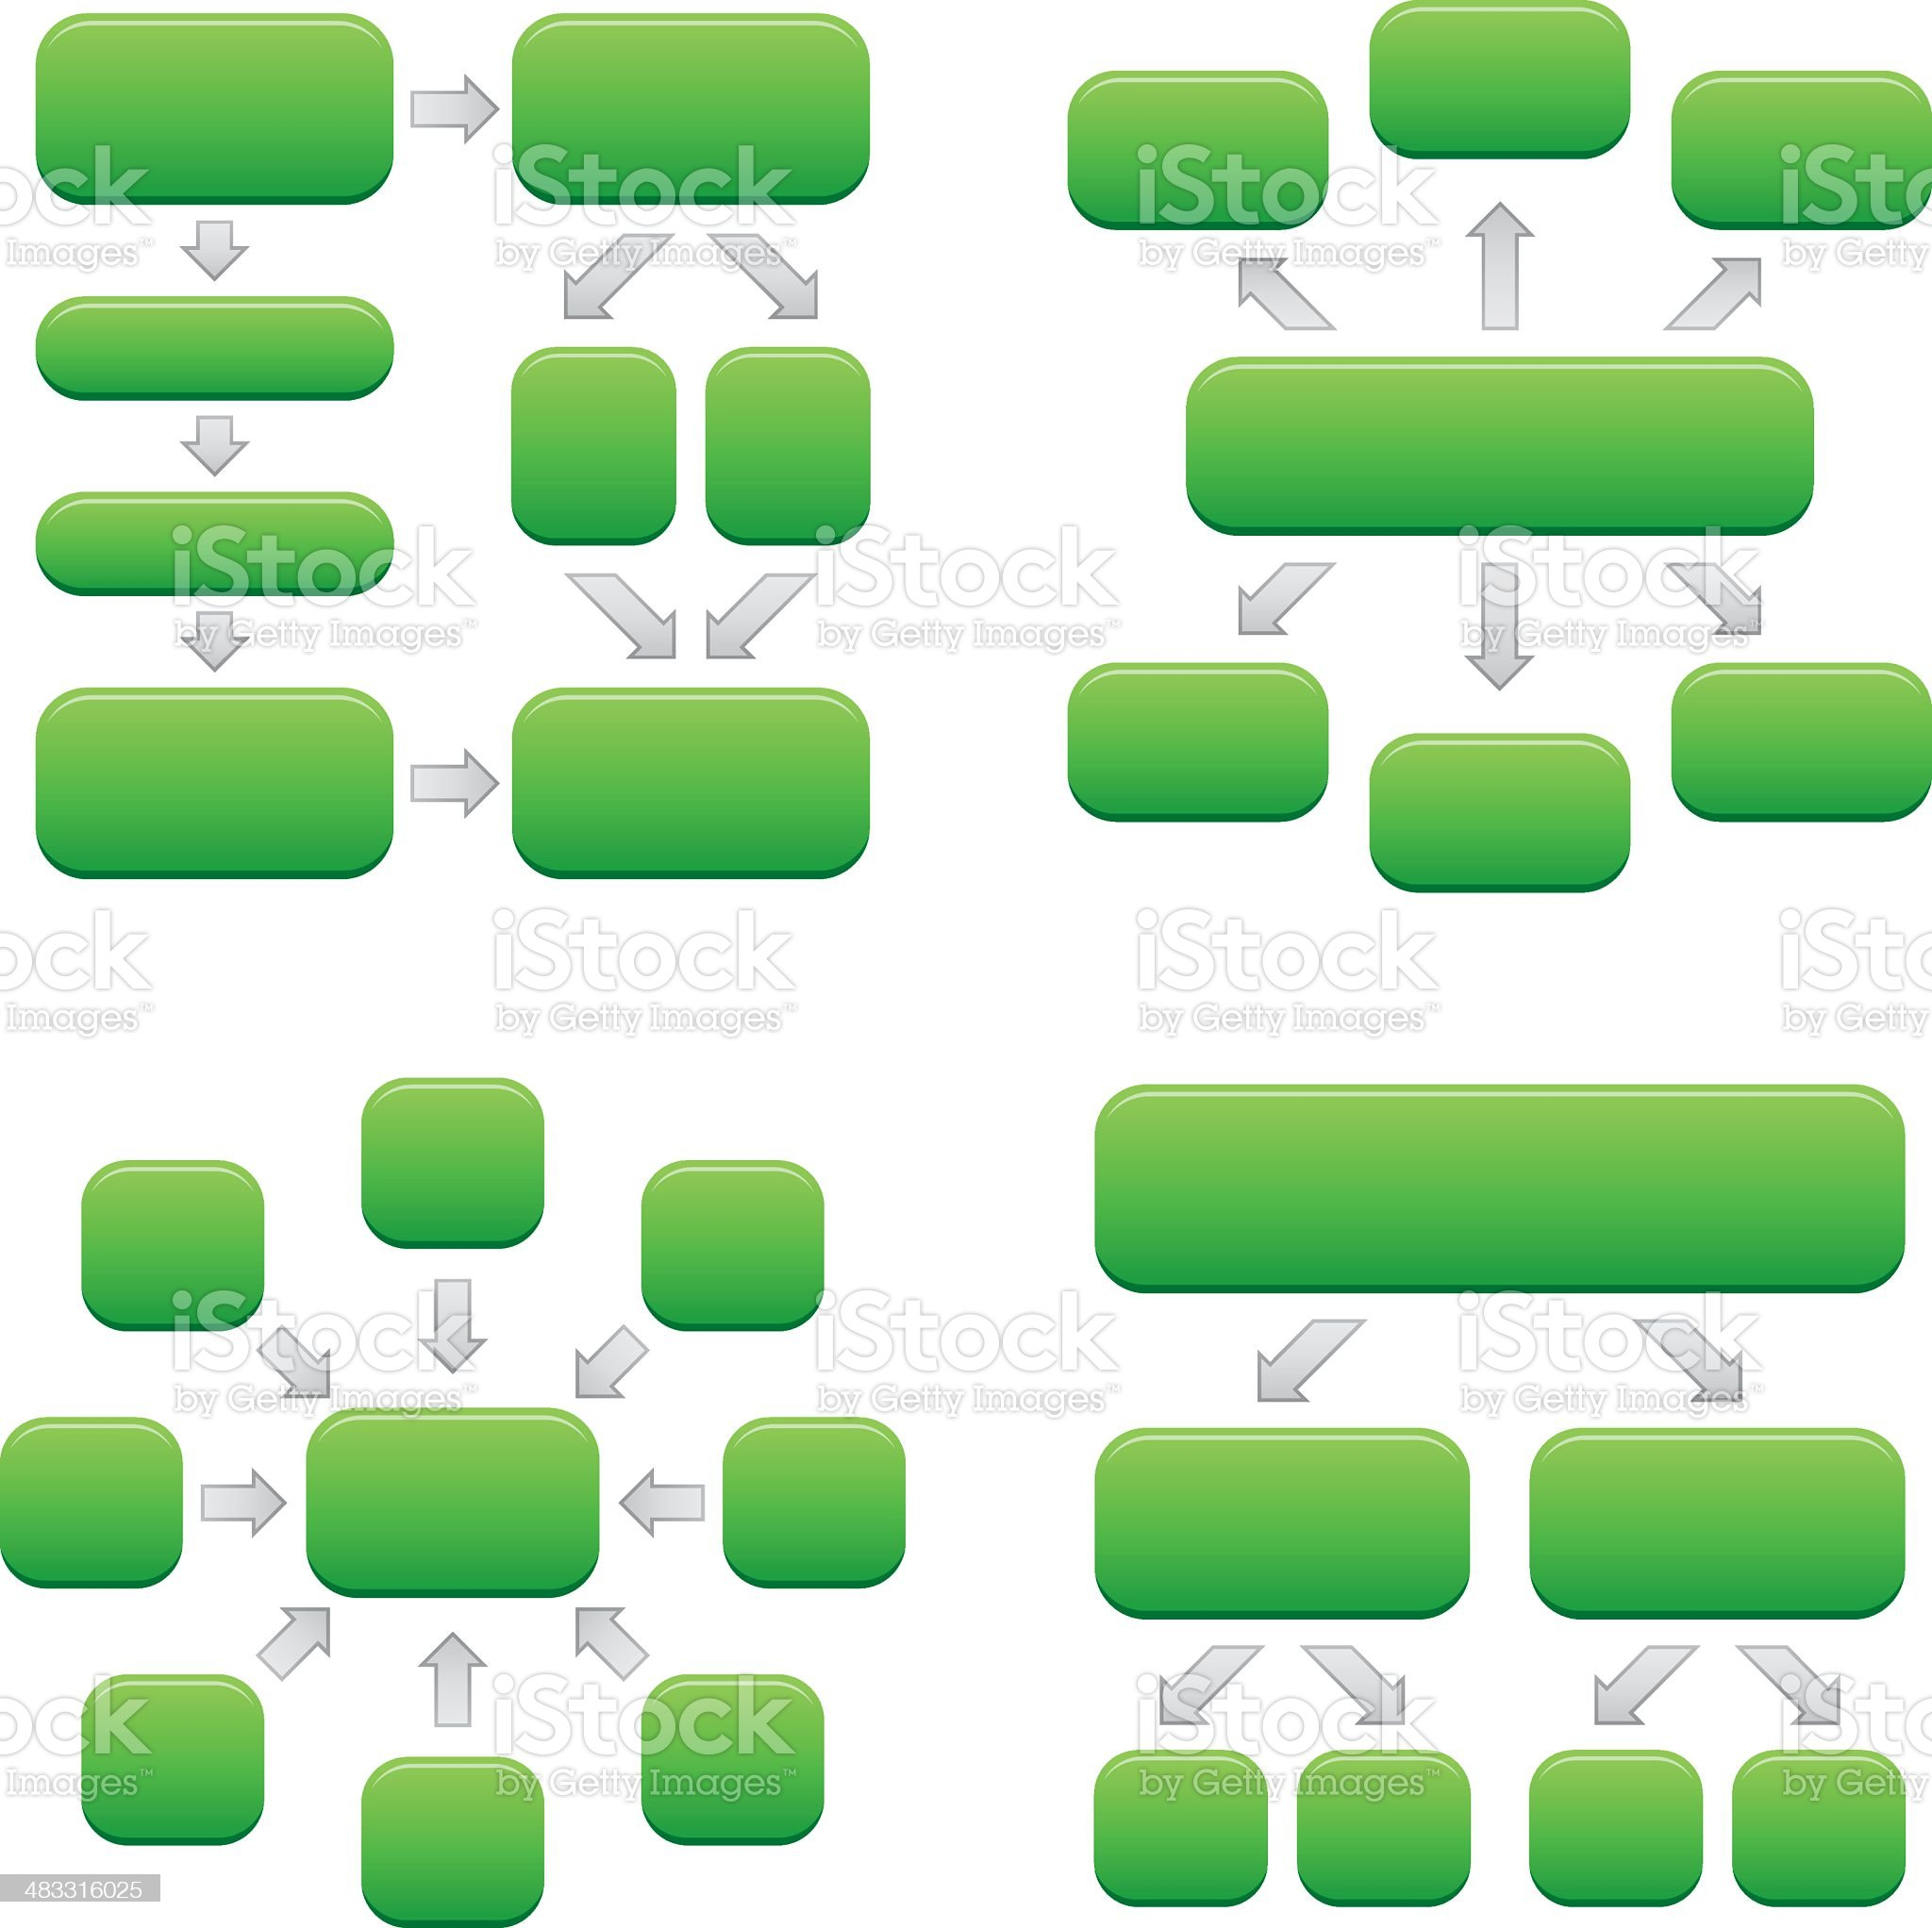 Flow charts royalty-free stock vector art